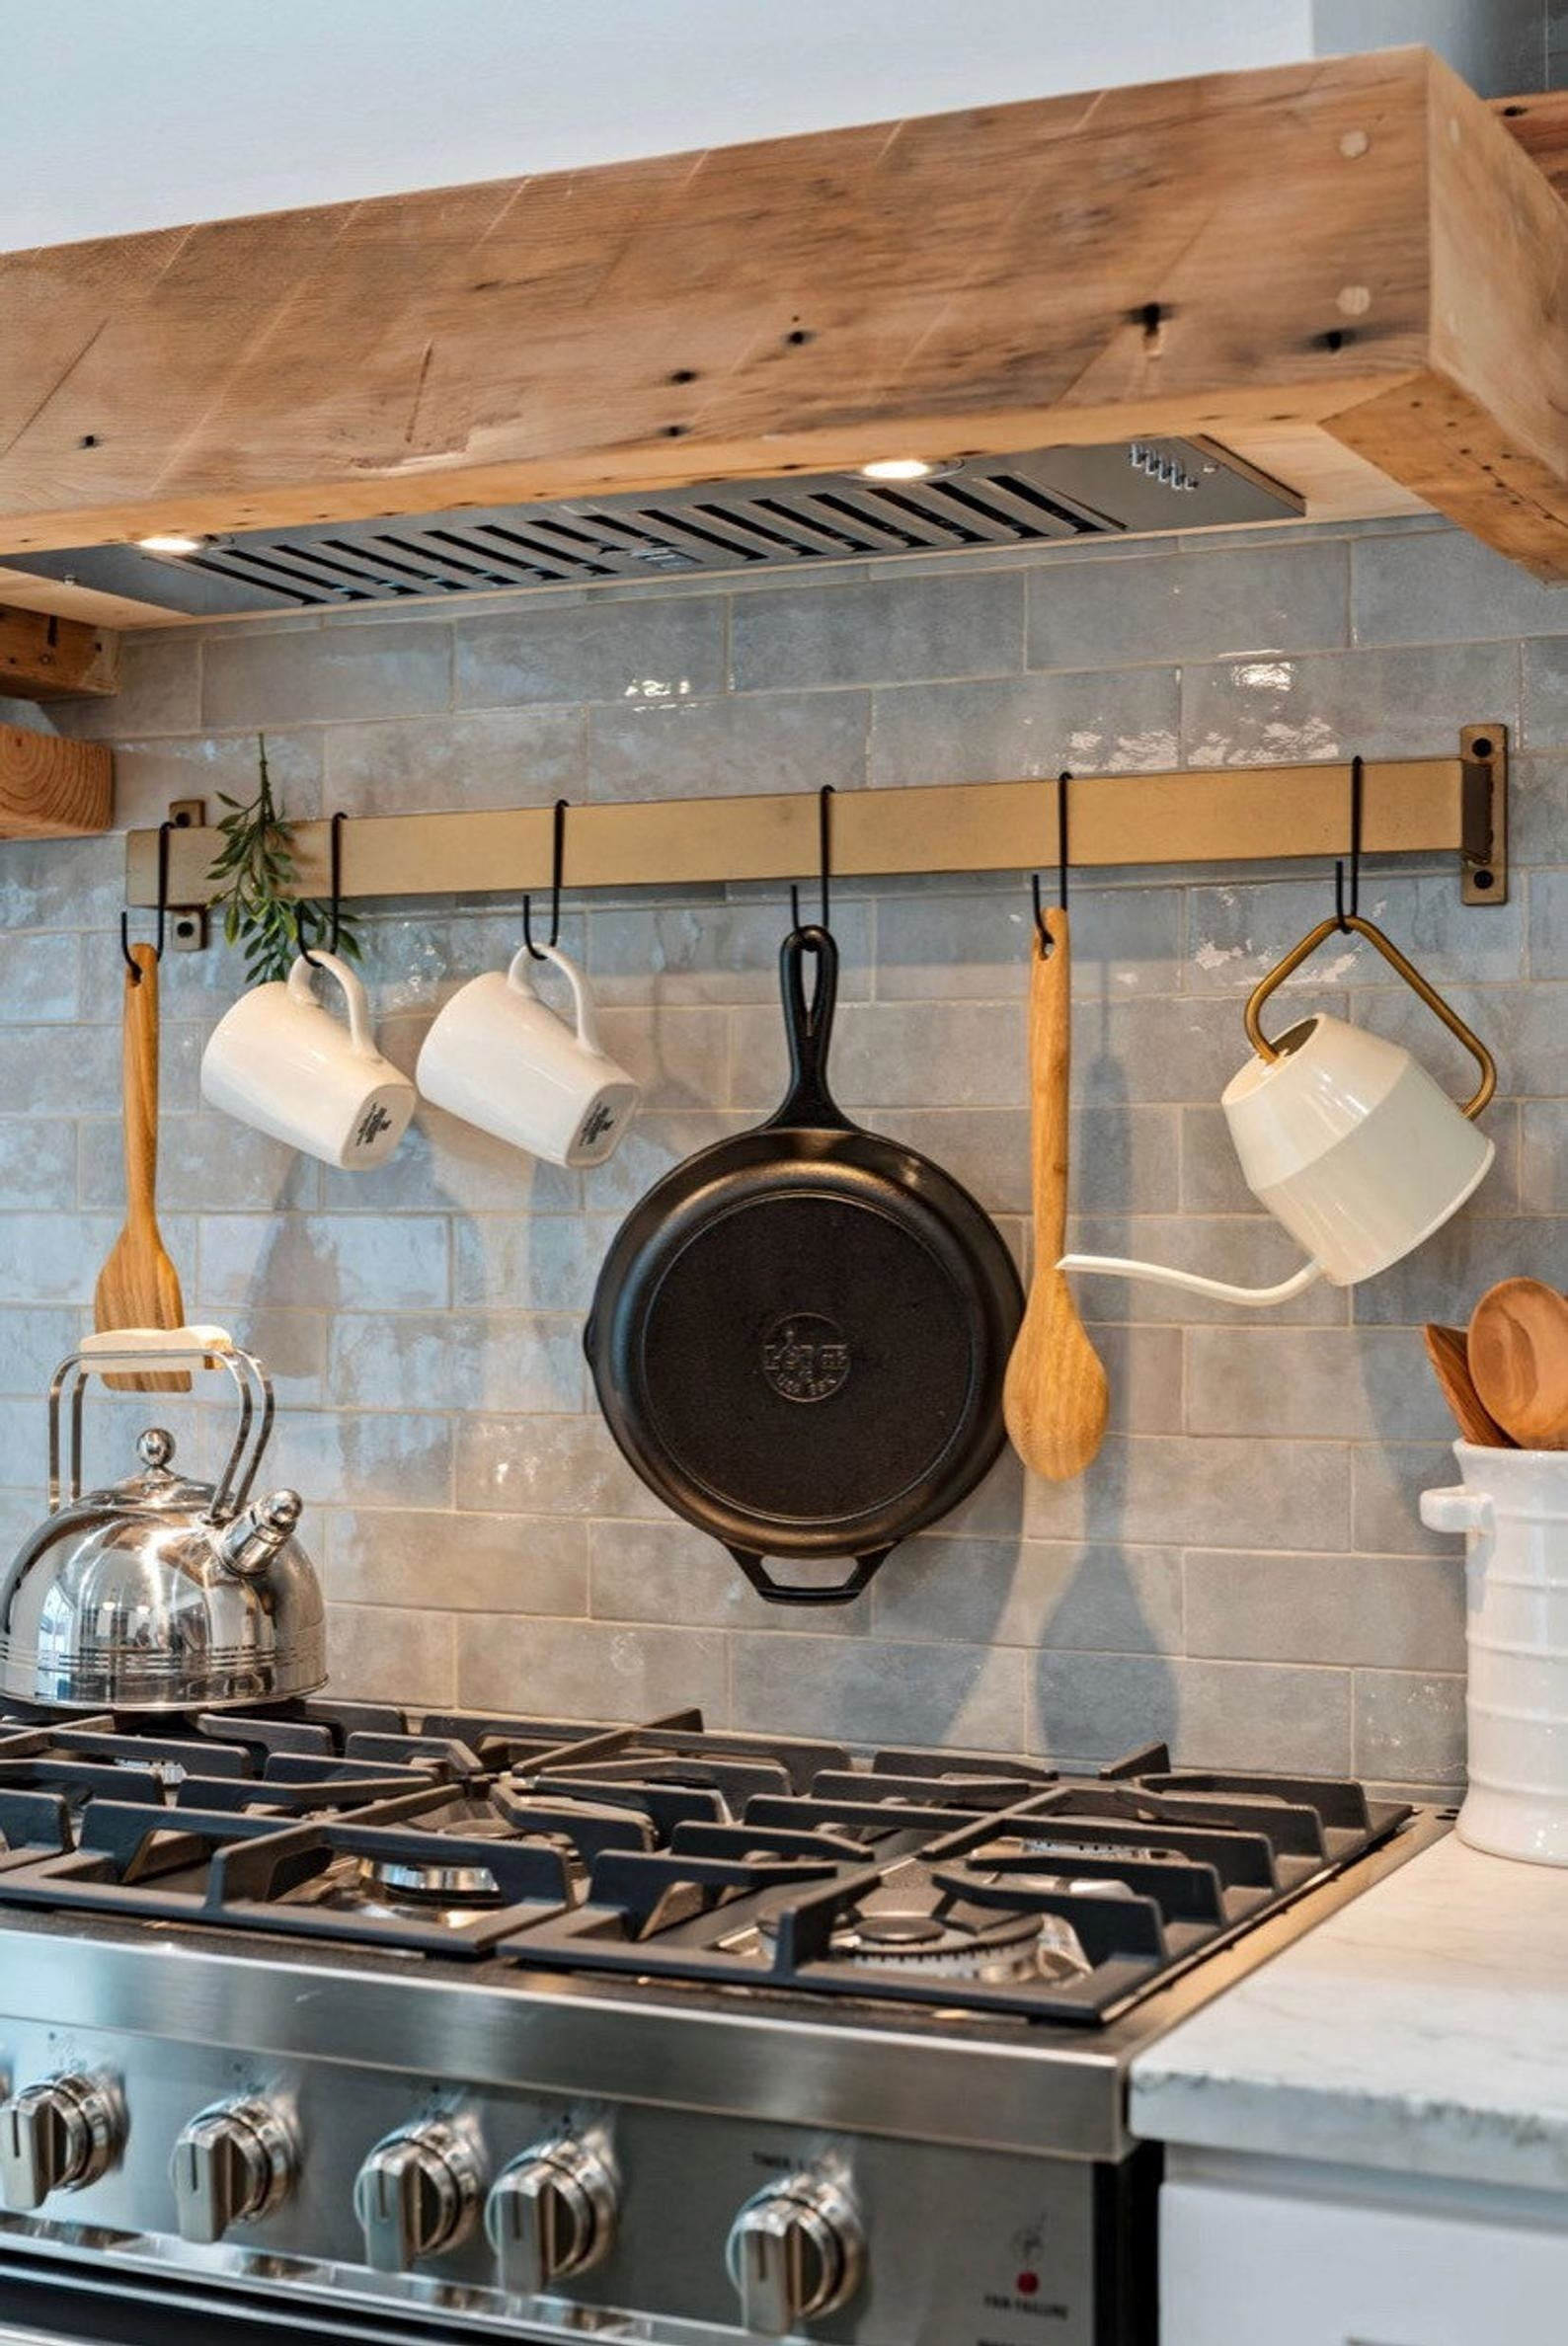 brass rack hung above stone holding utensils, tea kettle, and pans